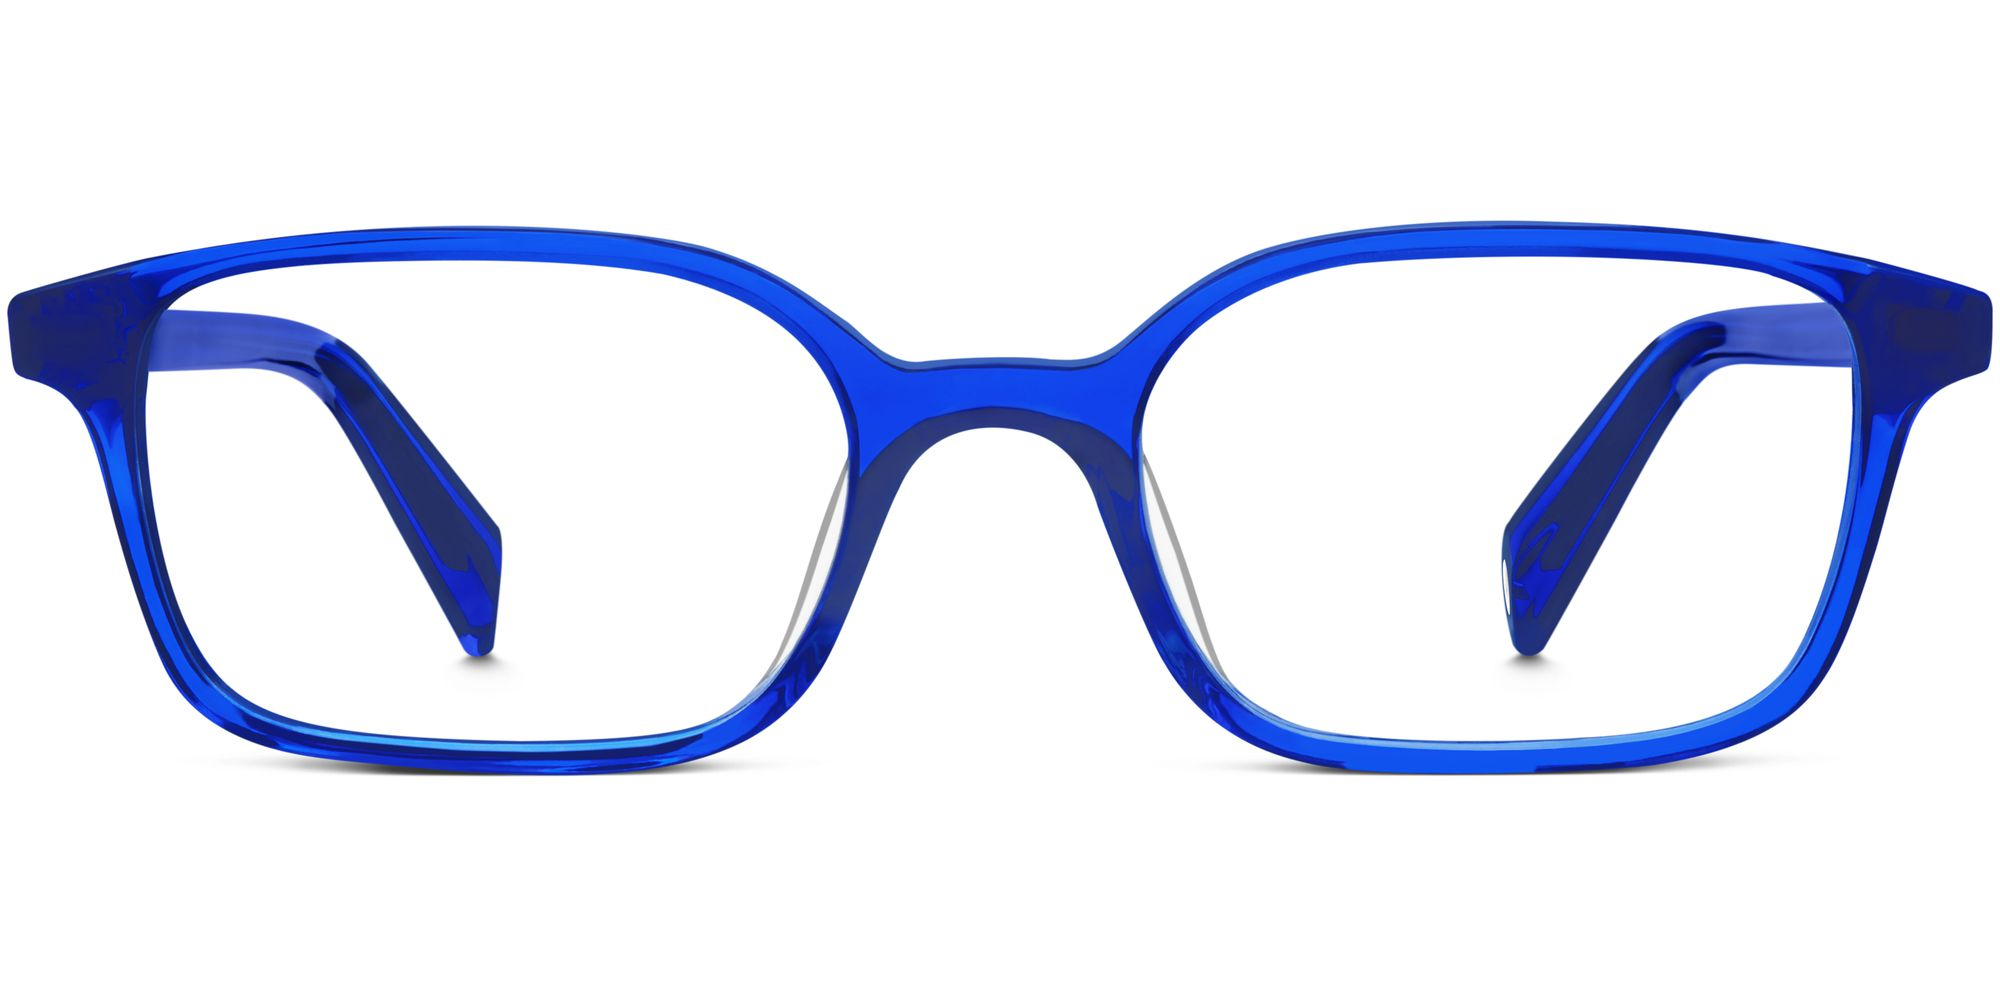 Eyeglasses - Marina Blue Eyewear glasses and contact ...